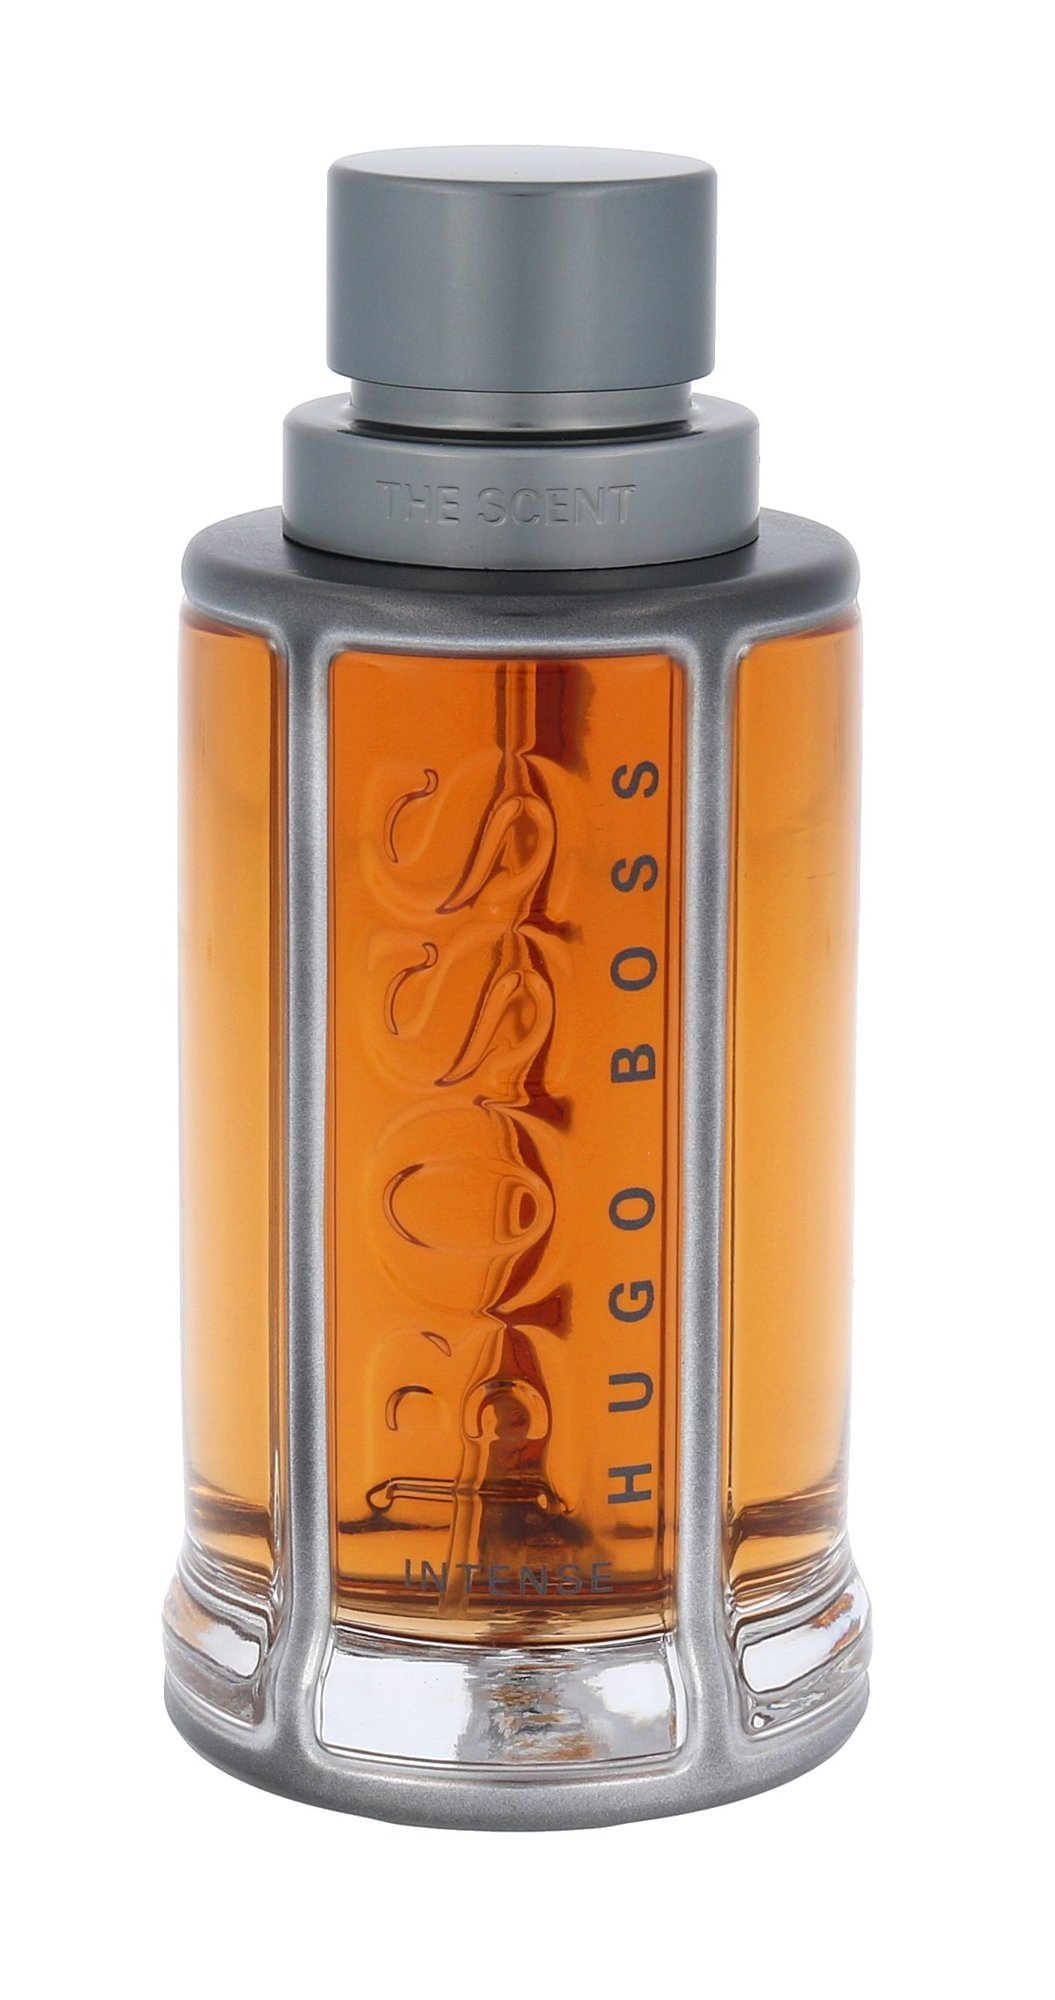 HUGO BOSS Boss The Scent Eau de Parfum 100ml